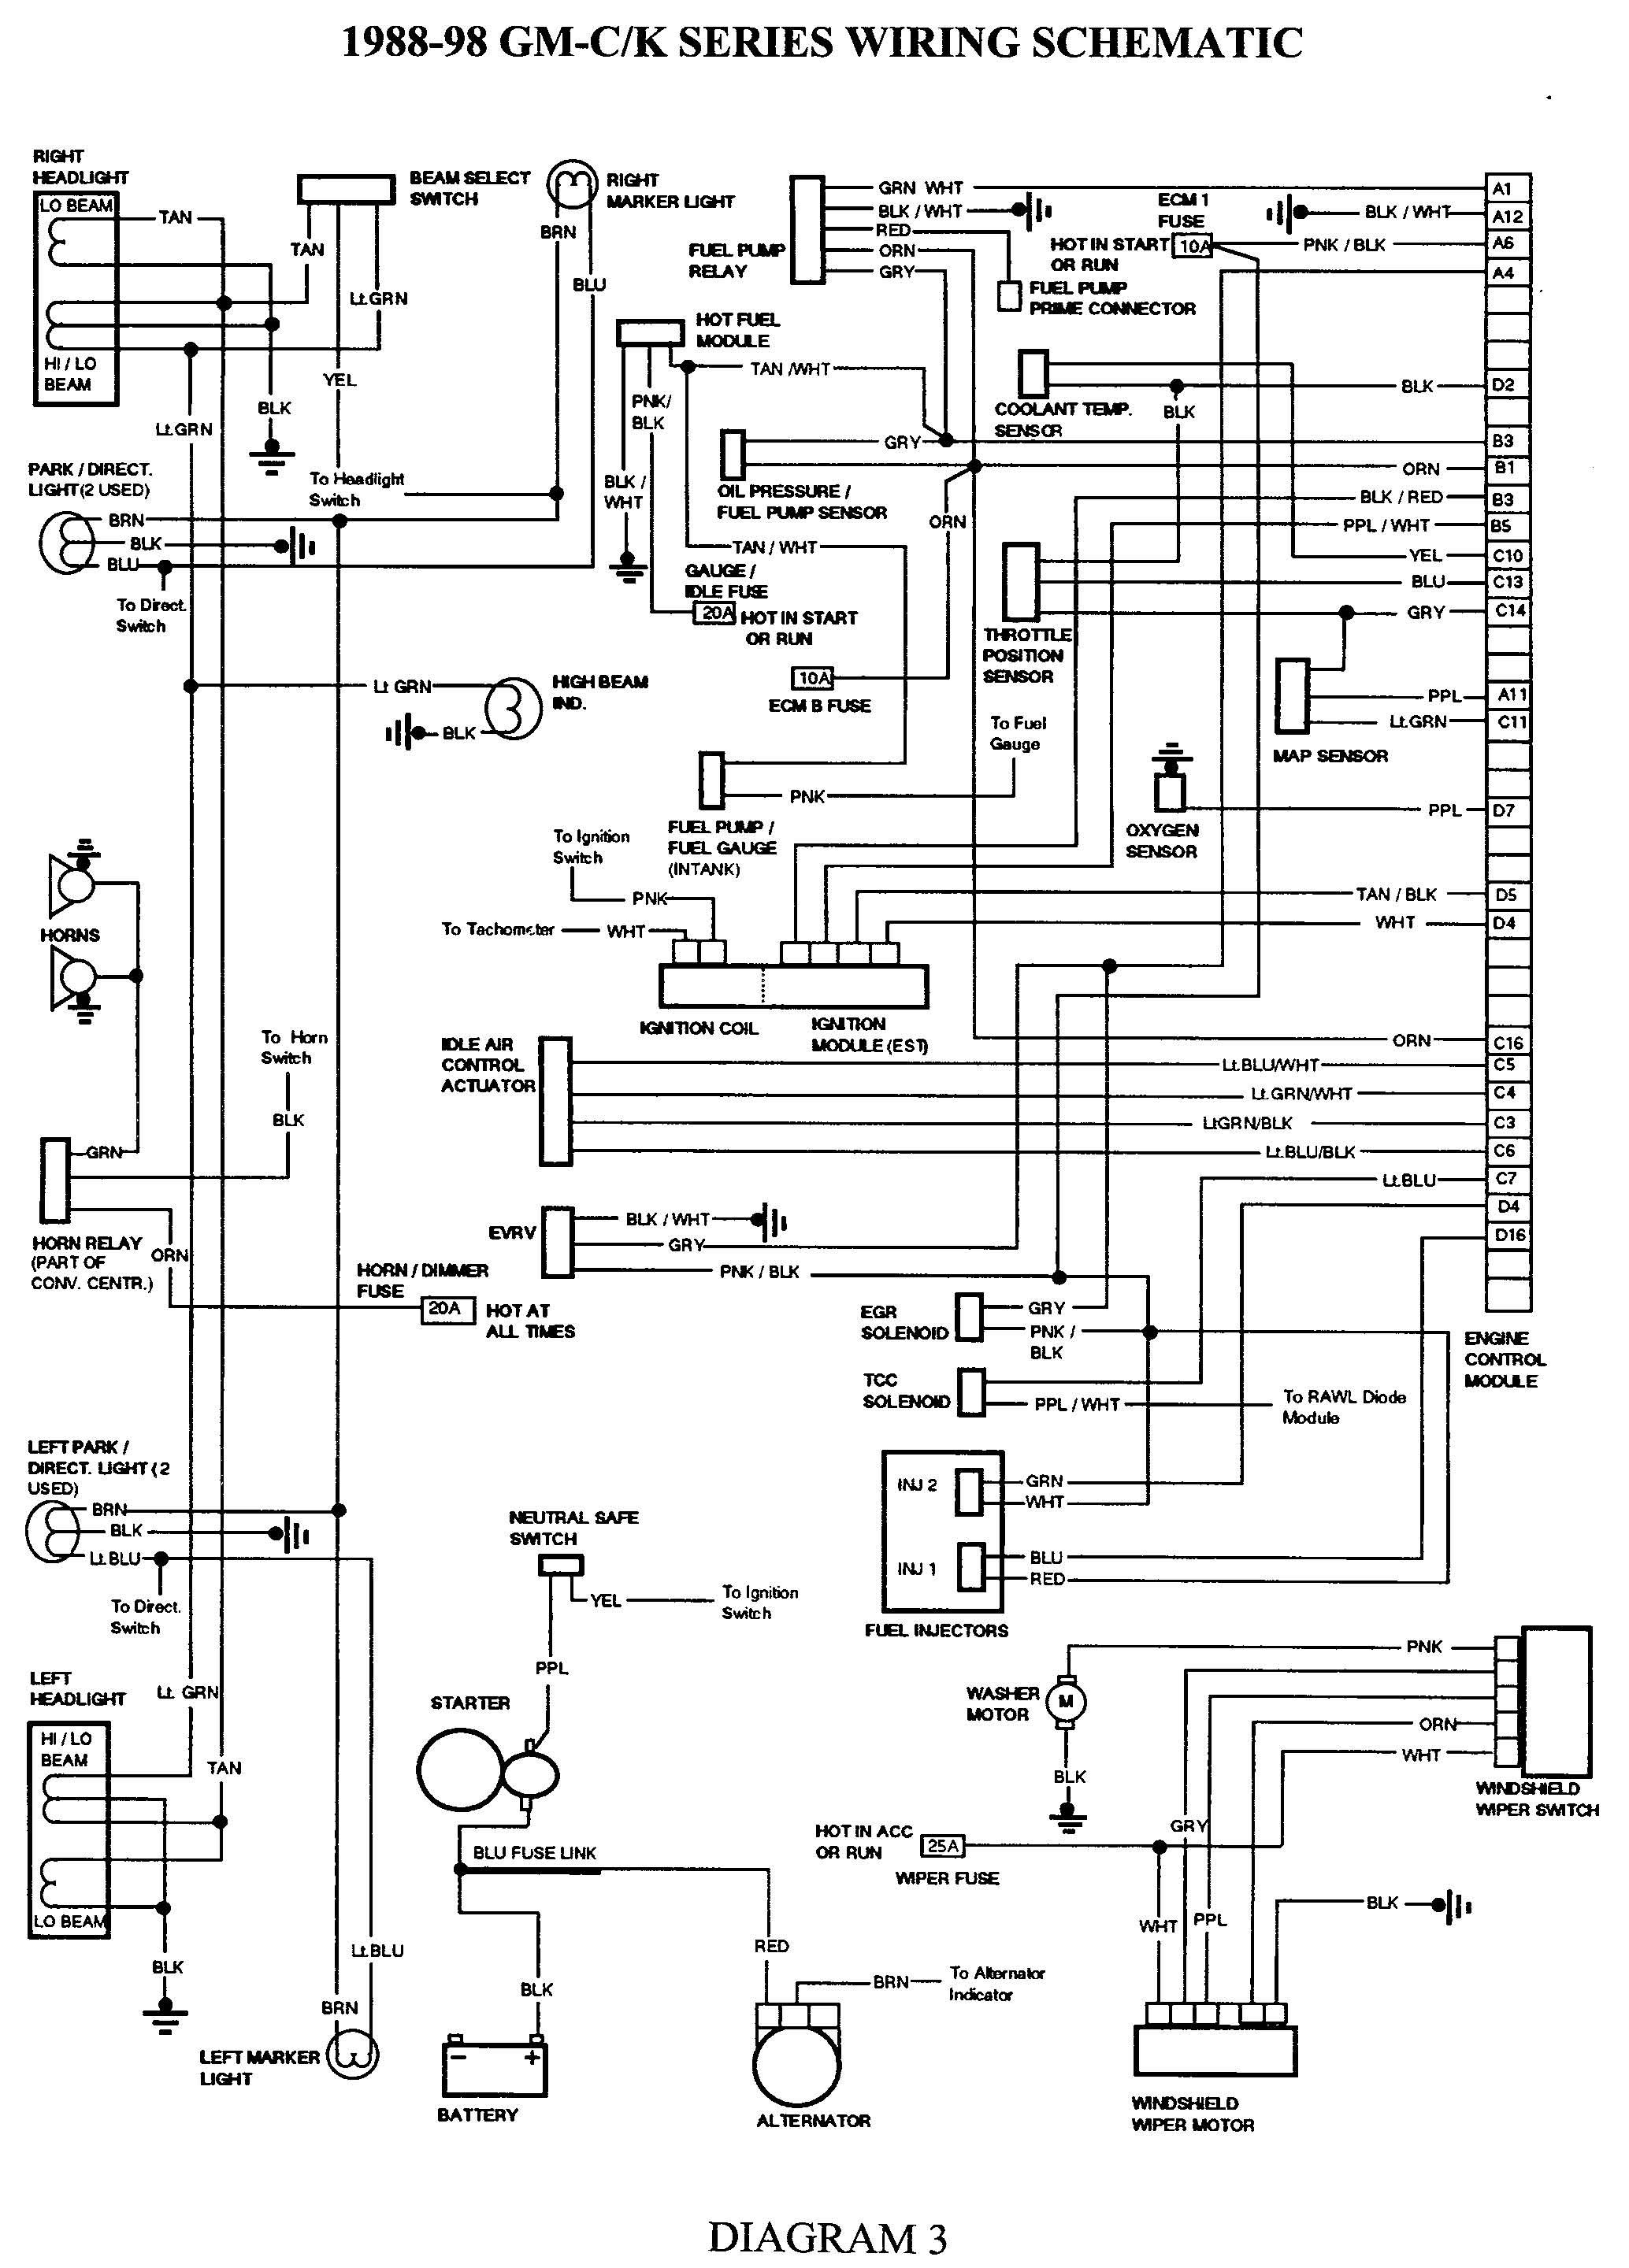 gmc truck wiring diagrams on gm wiring harness diagram 88 98 kc full wiring harness to fit a 87 down chevy truck orblazer 2 or 4wd [ 2068 x 2880 Pixel ]